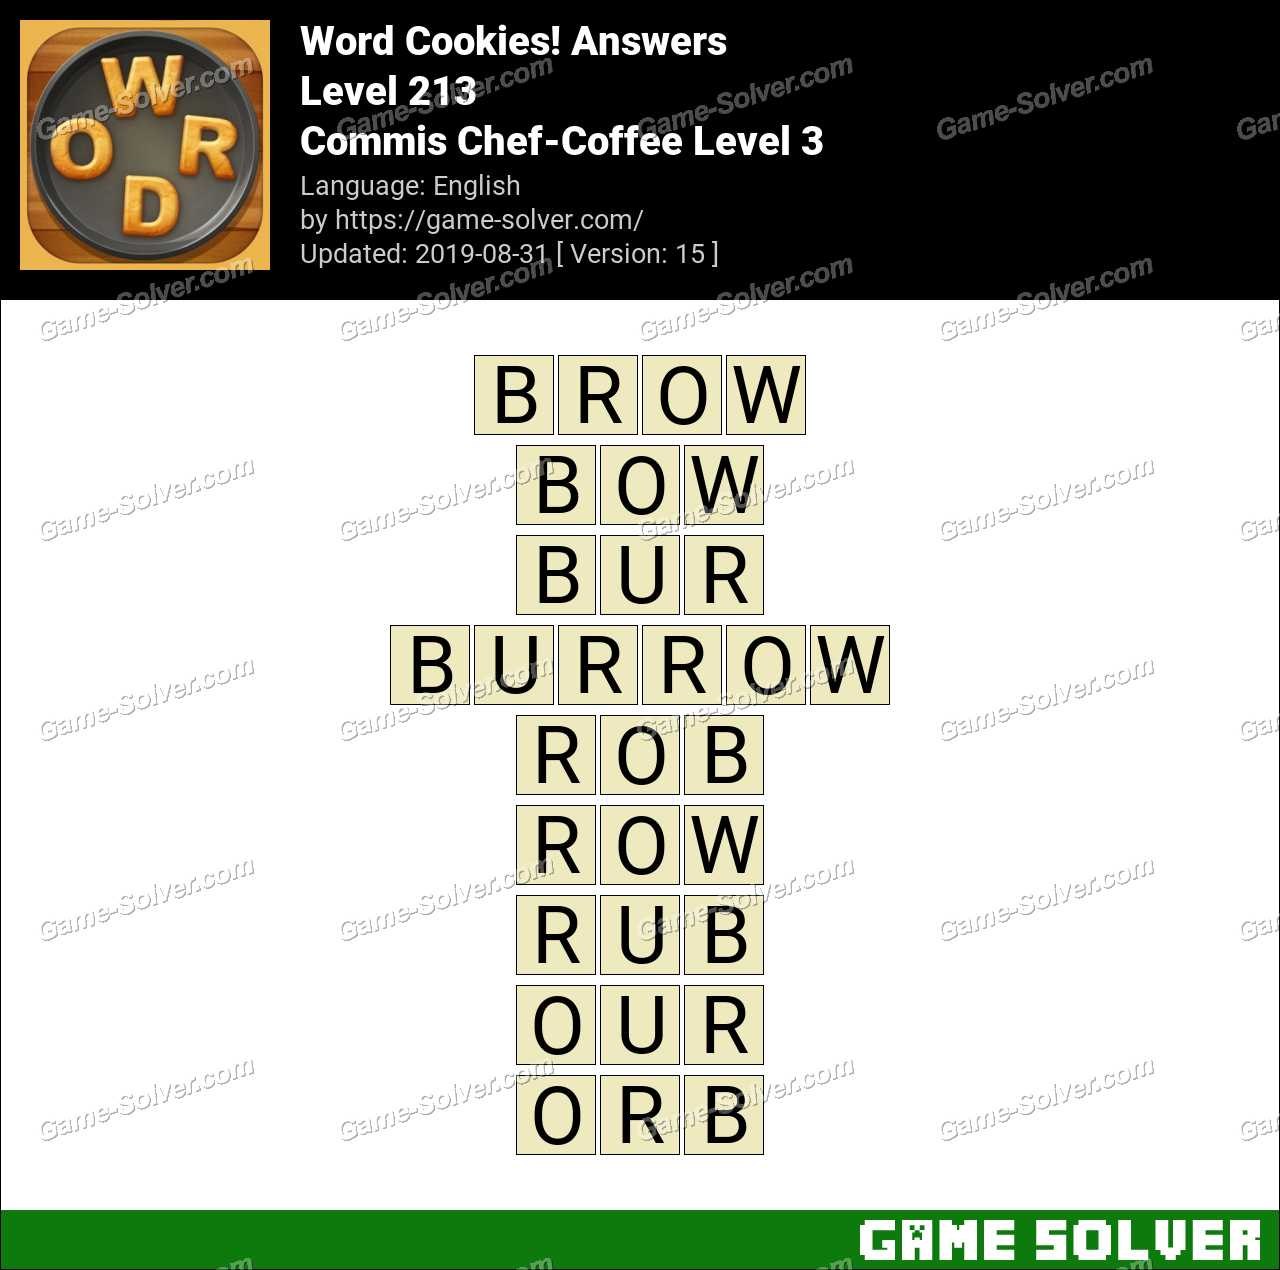 Word Cookies Commis Chef-Coffee Level 3 Answers